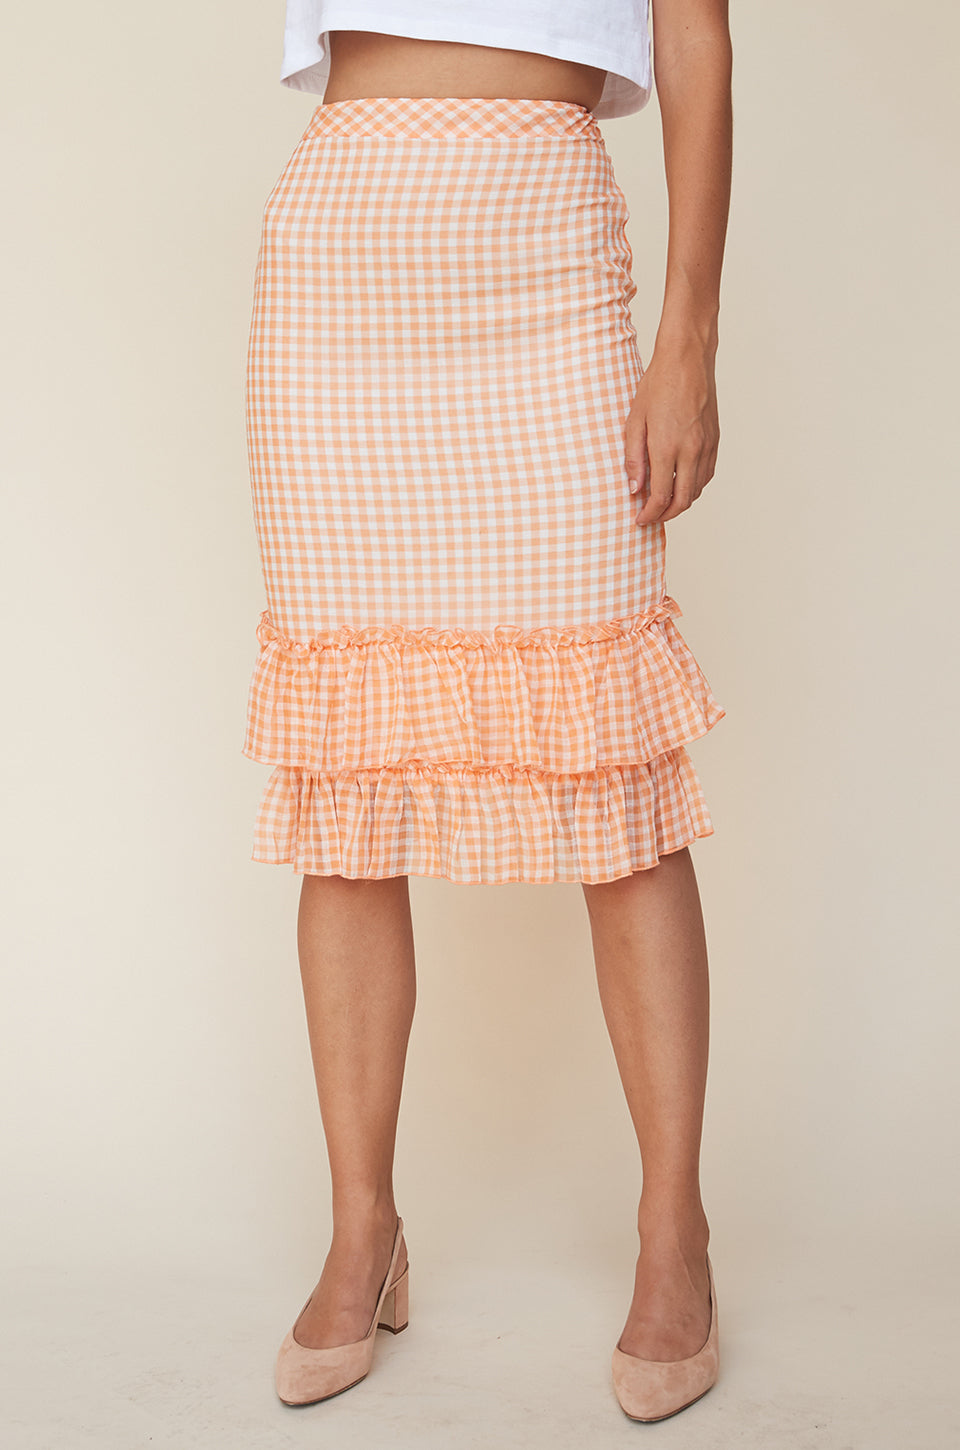 High Waist Ruffle Skirt